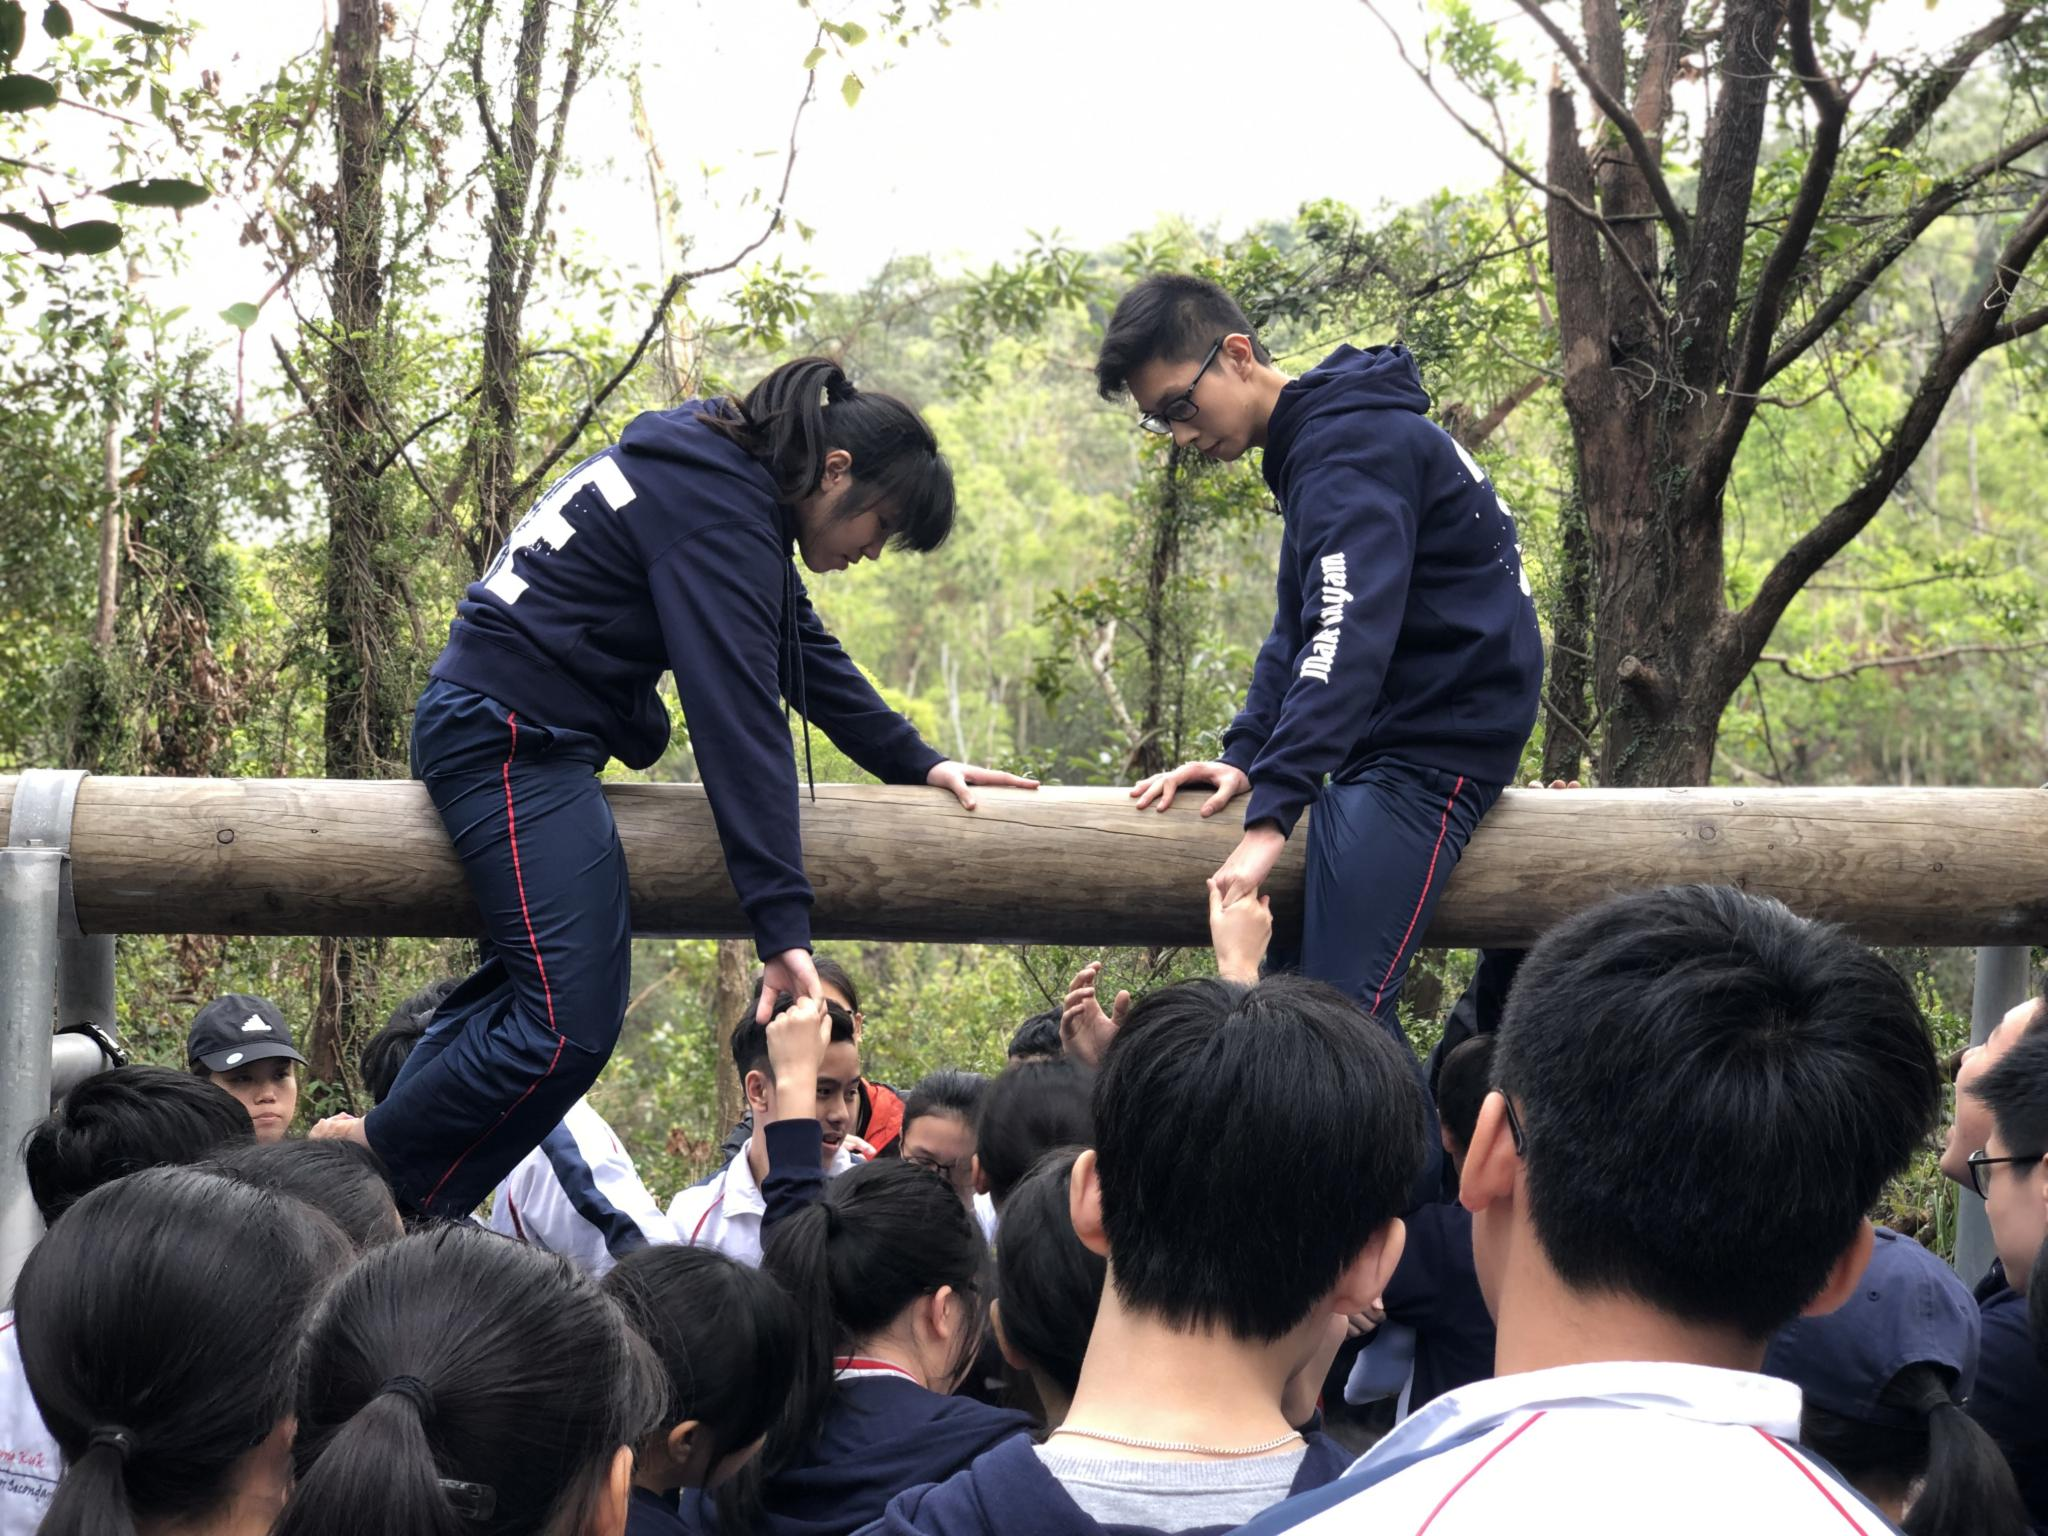 Students are trying to pull their friends up to sit on the log.